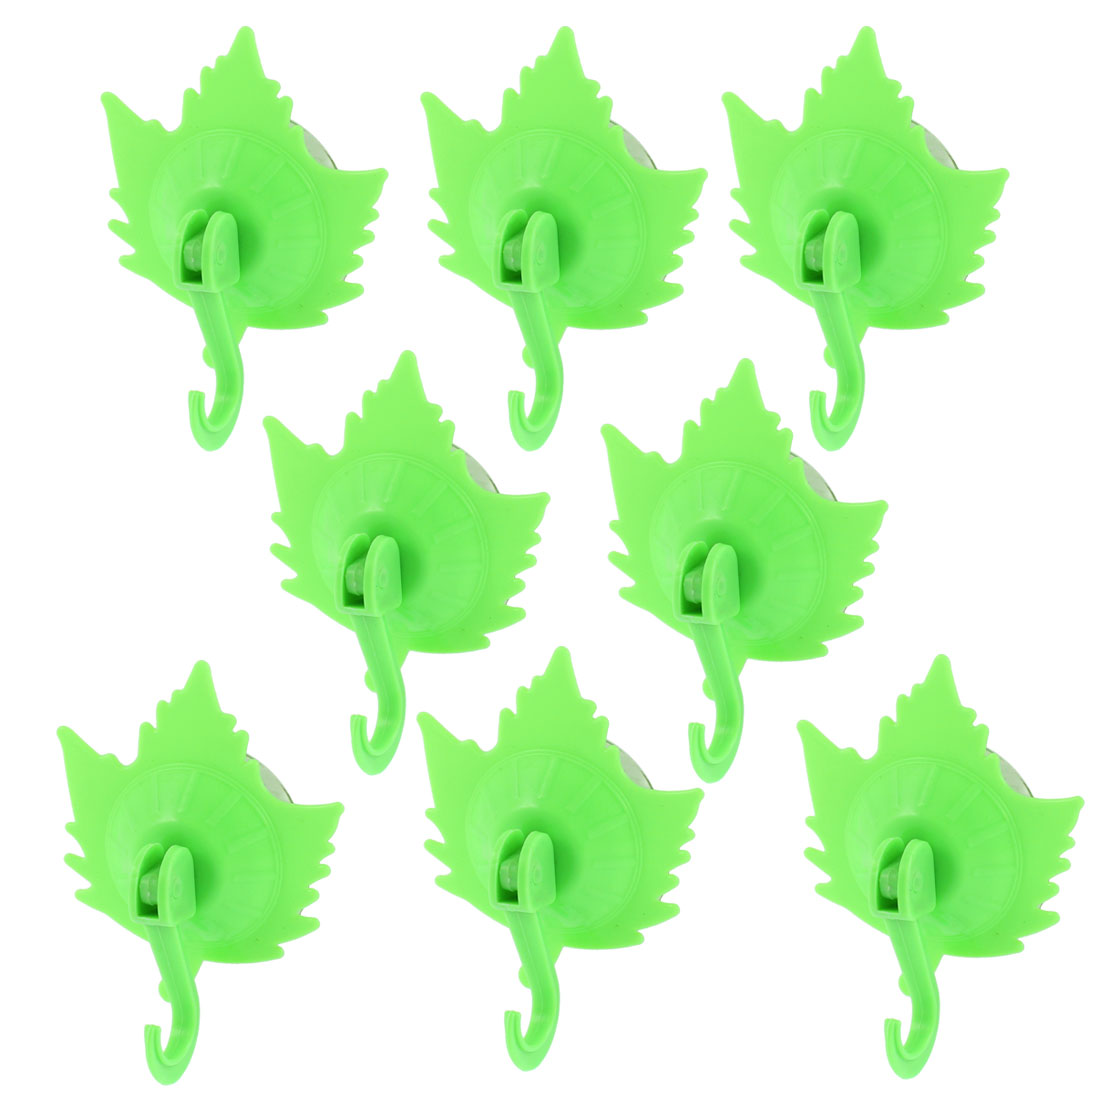 Home Clothes Maple Leaf Shaped Suction Cup Hooks Wall Hangers Green 8pcs